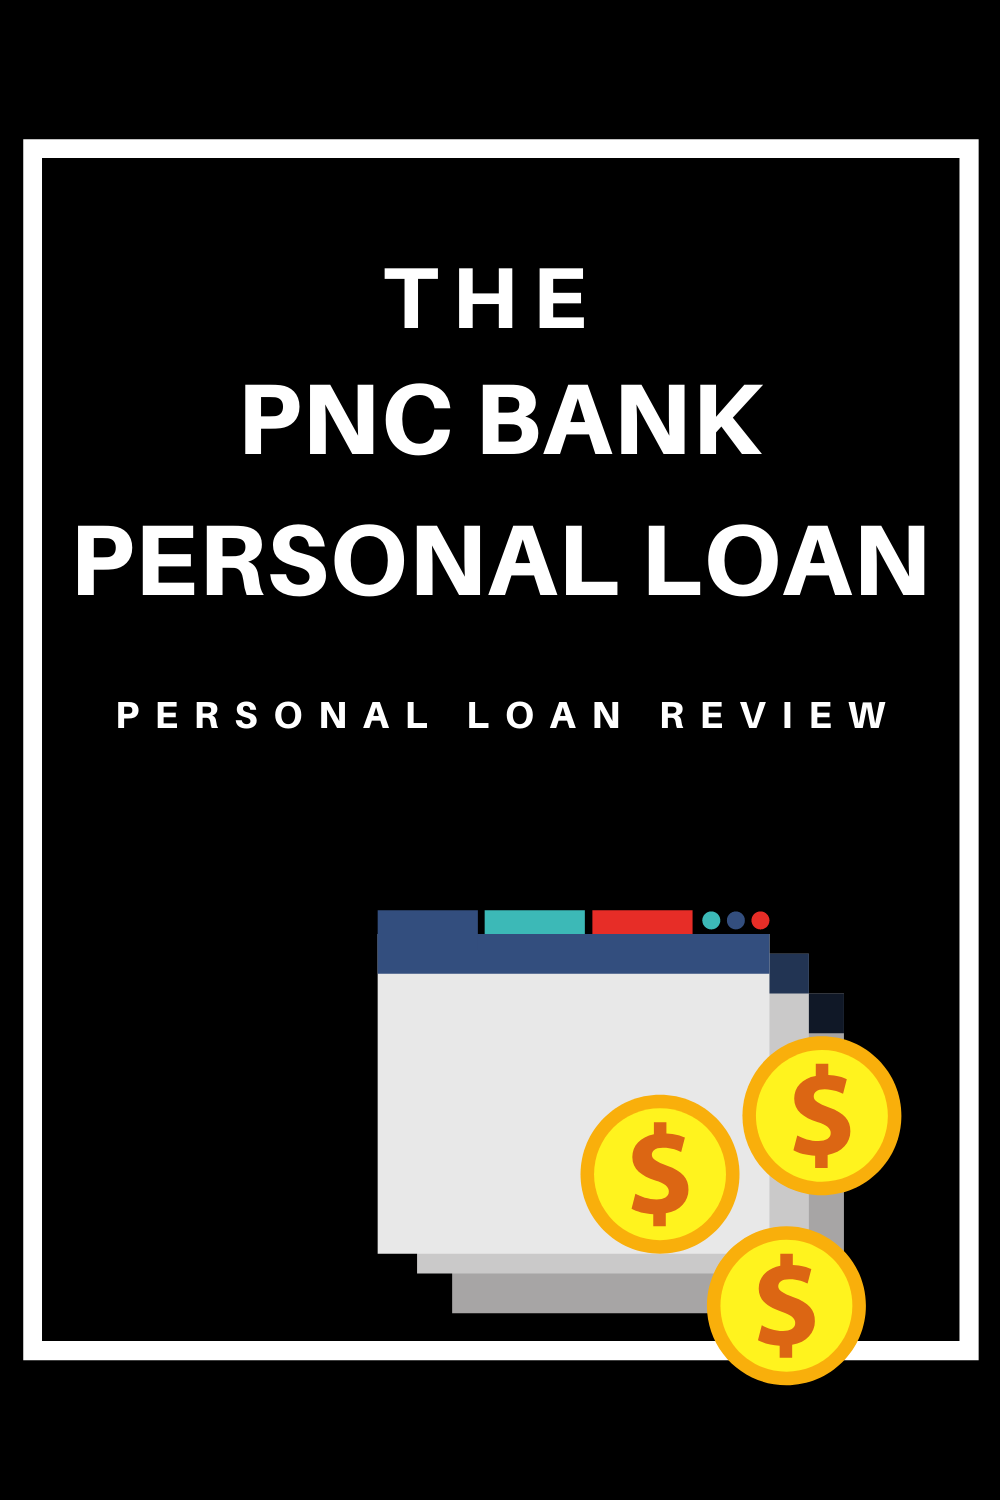 Pnc Bank Personal Loan Review In 2020 Personal Loans Loan Pnc